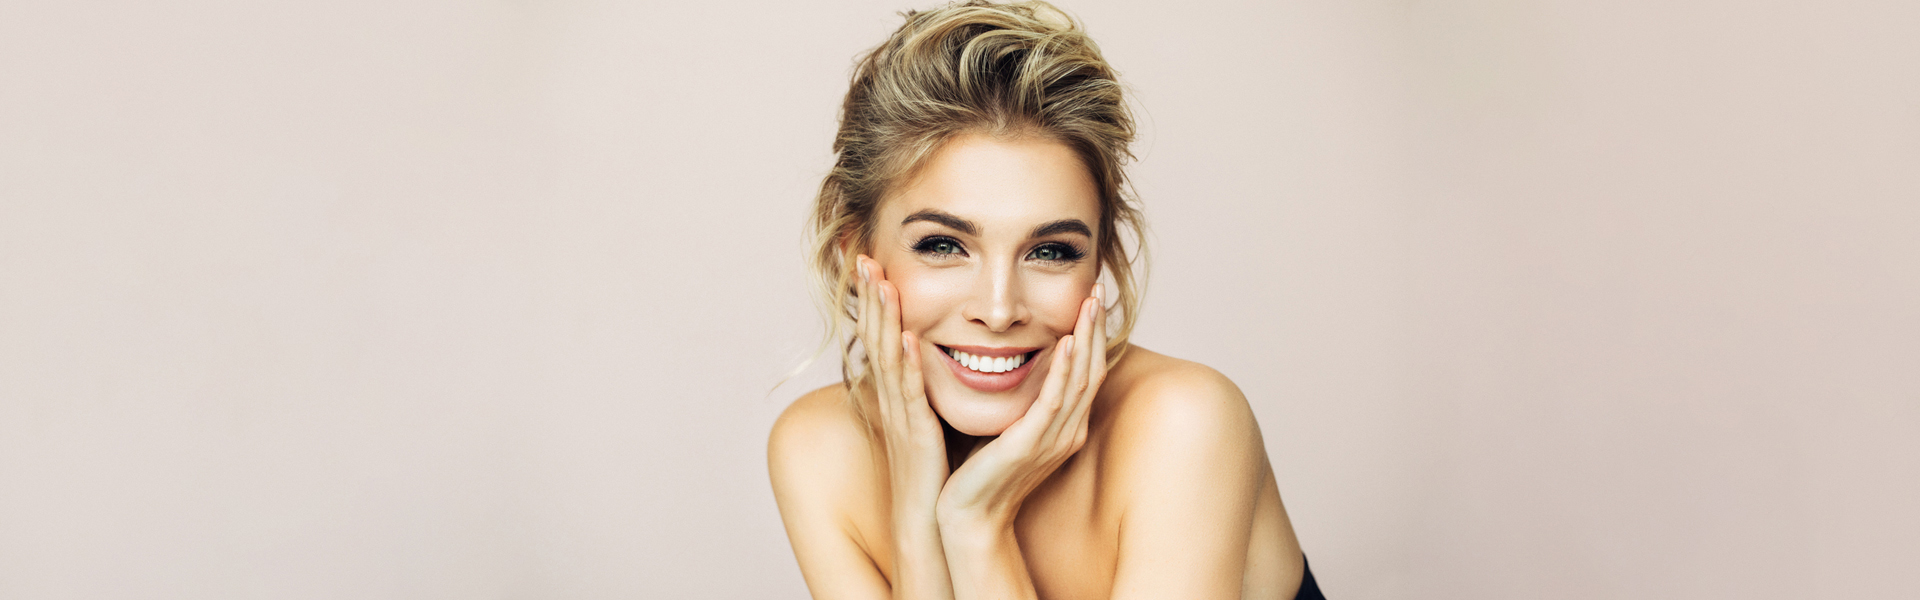 Is Now A Good Time For Cosmetic Dentistry?